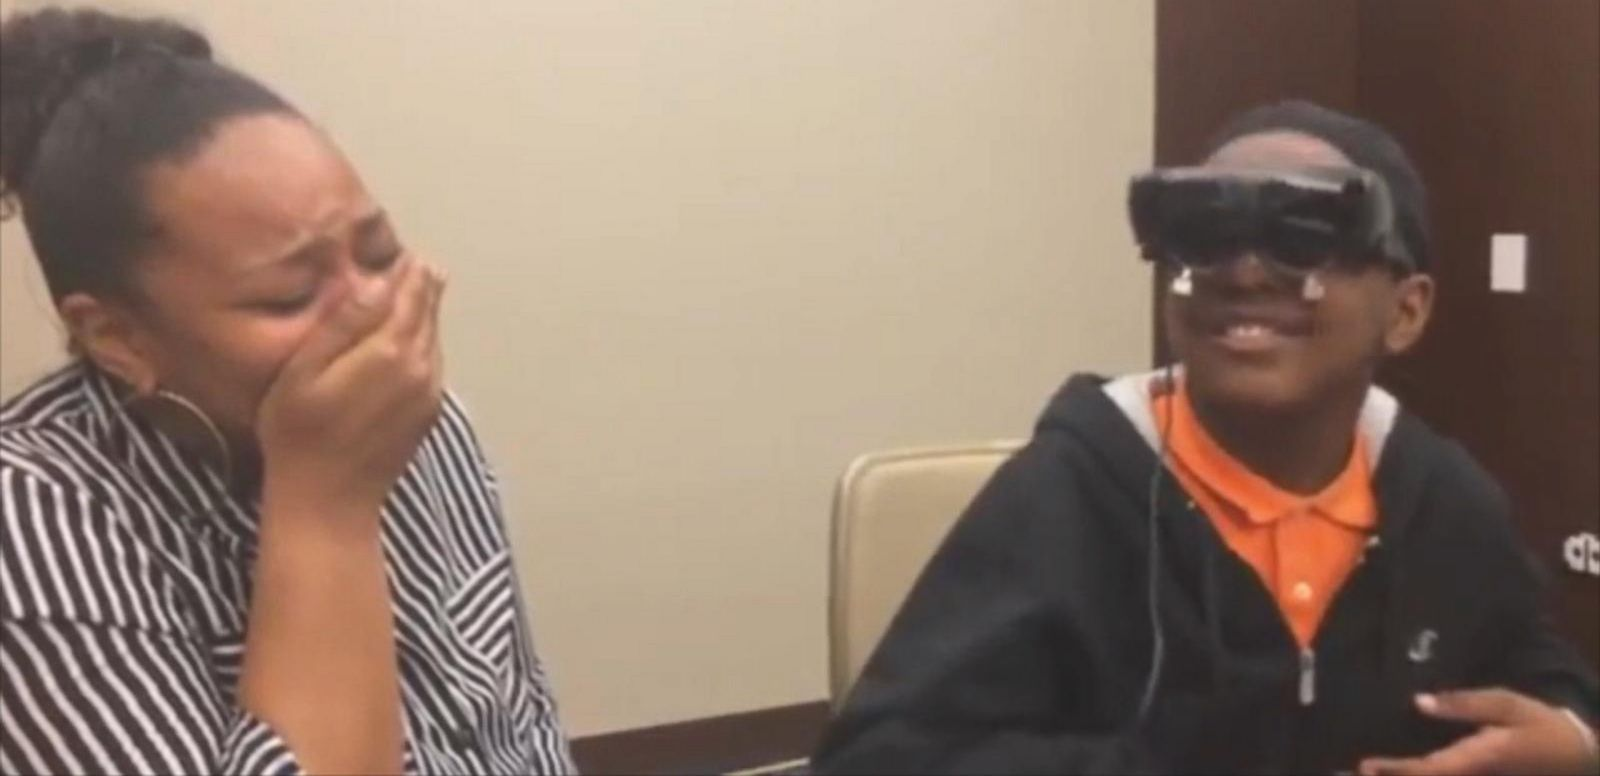 VIDEO: A Legally Blind Tween Sees His Mother for the First Time